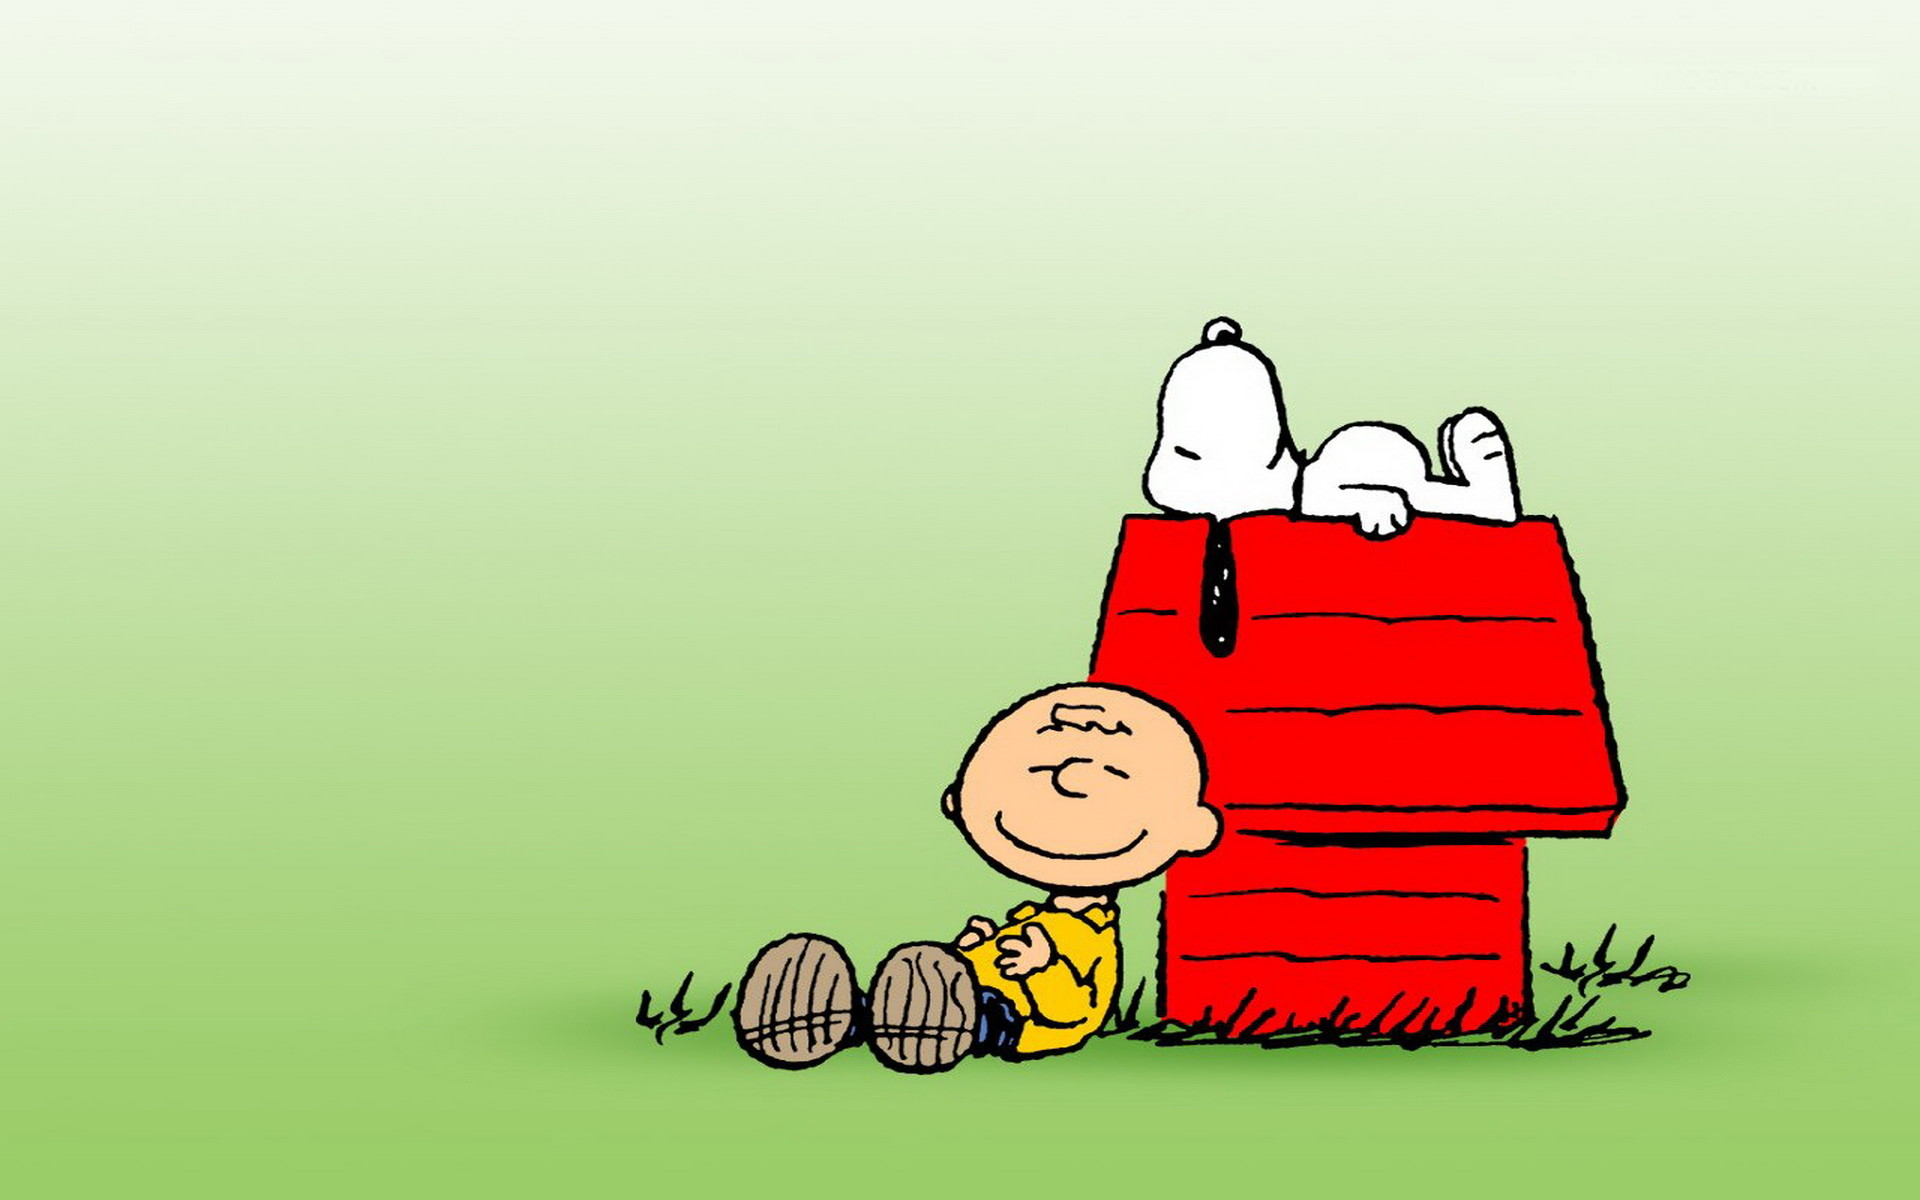 1920x1200 Collection Of Charlie Brown Desktop Wallpaper On HDWallpapers